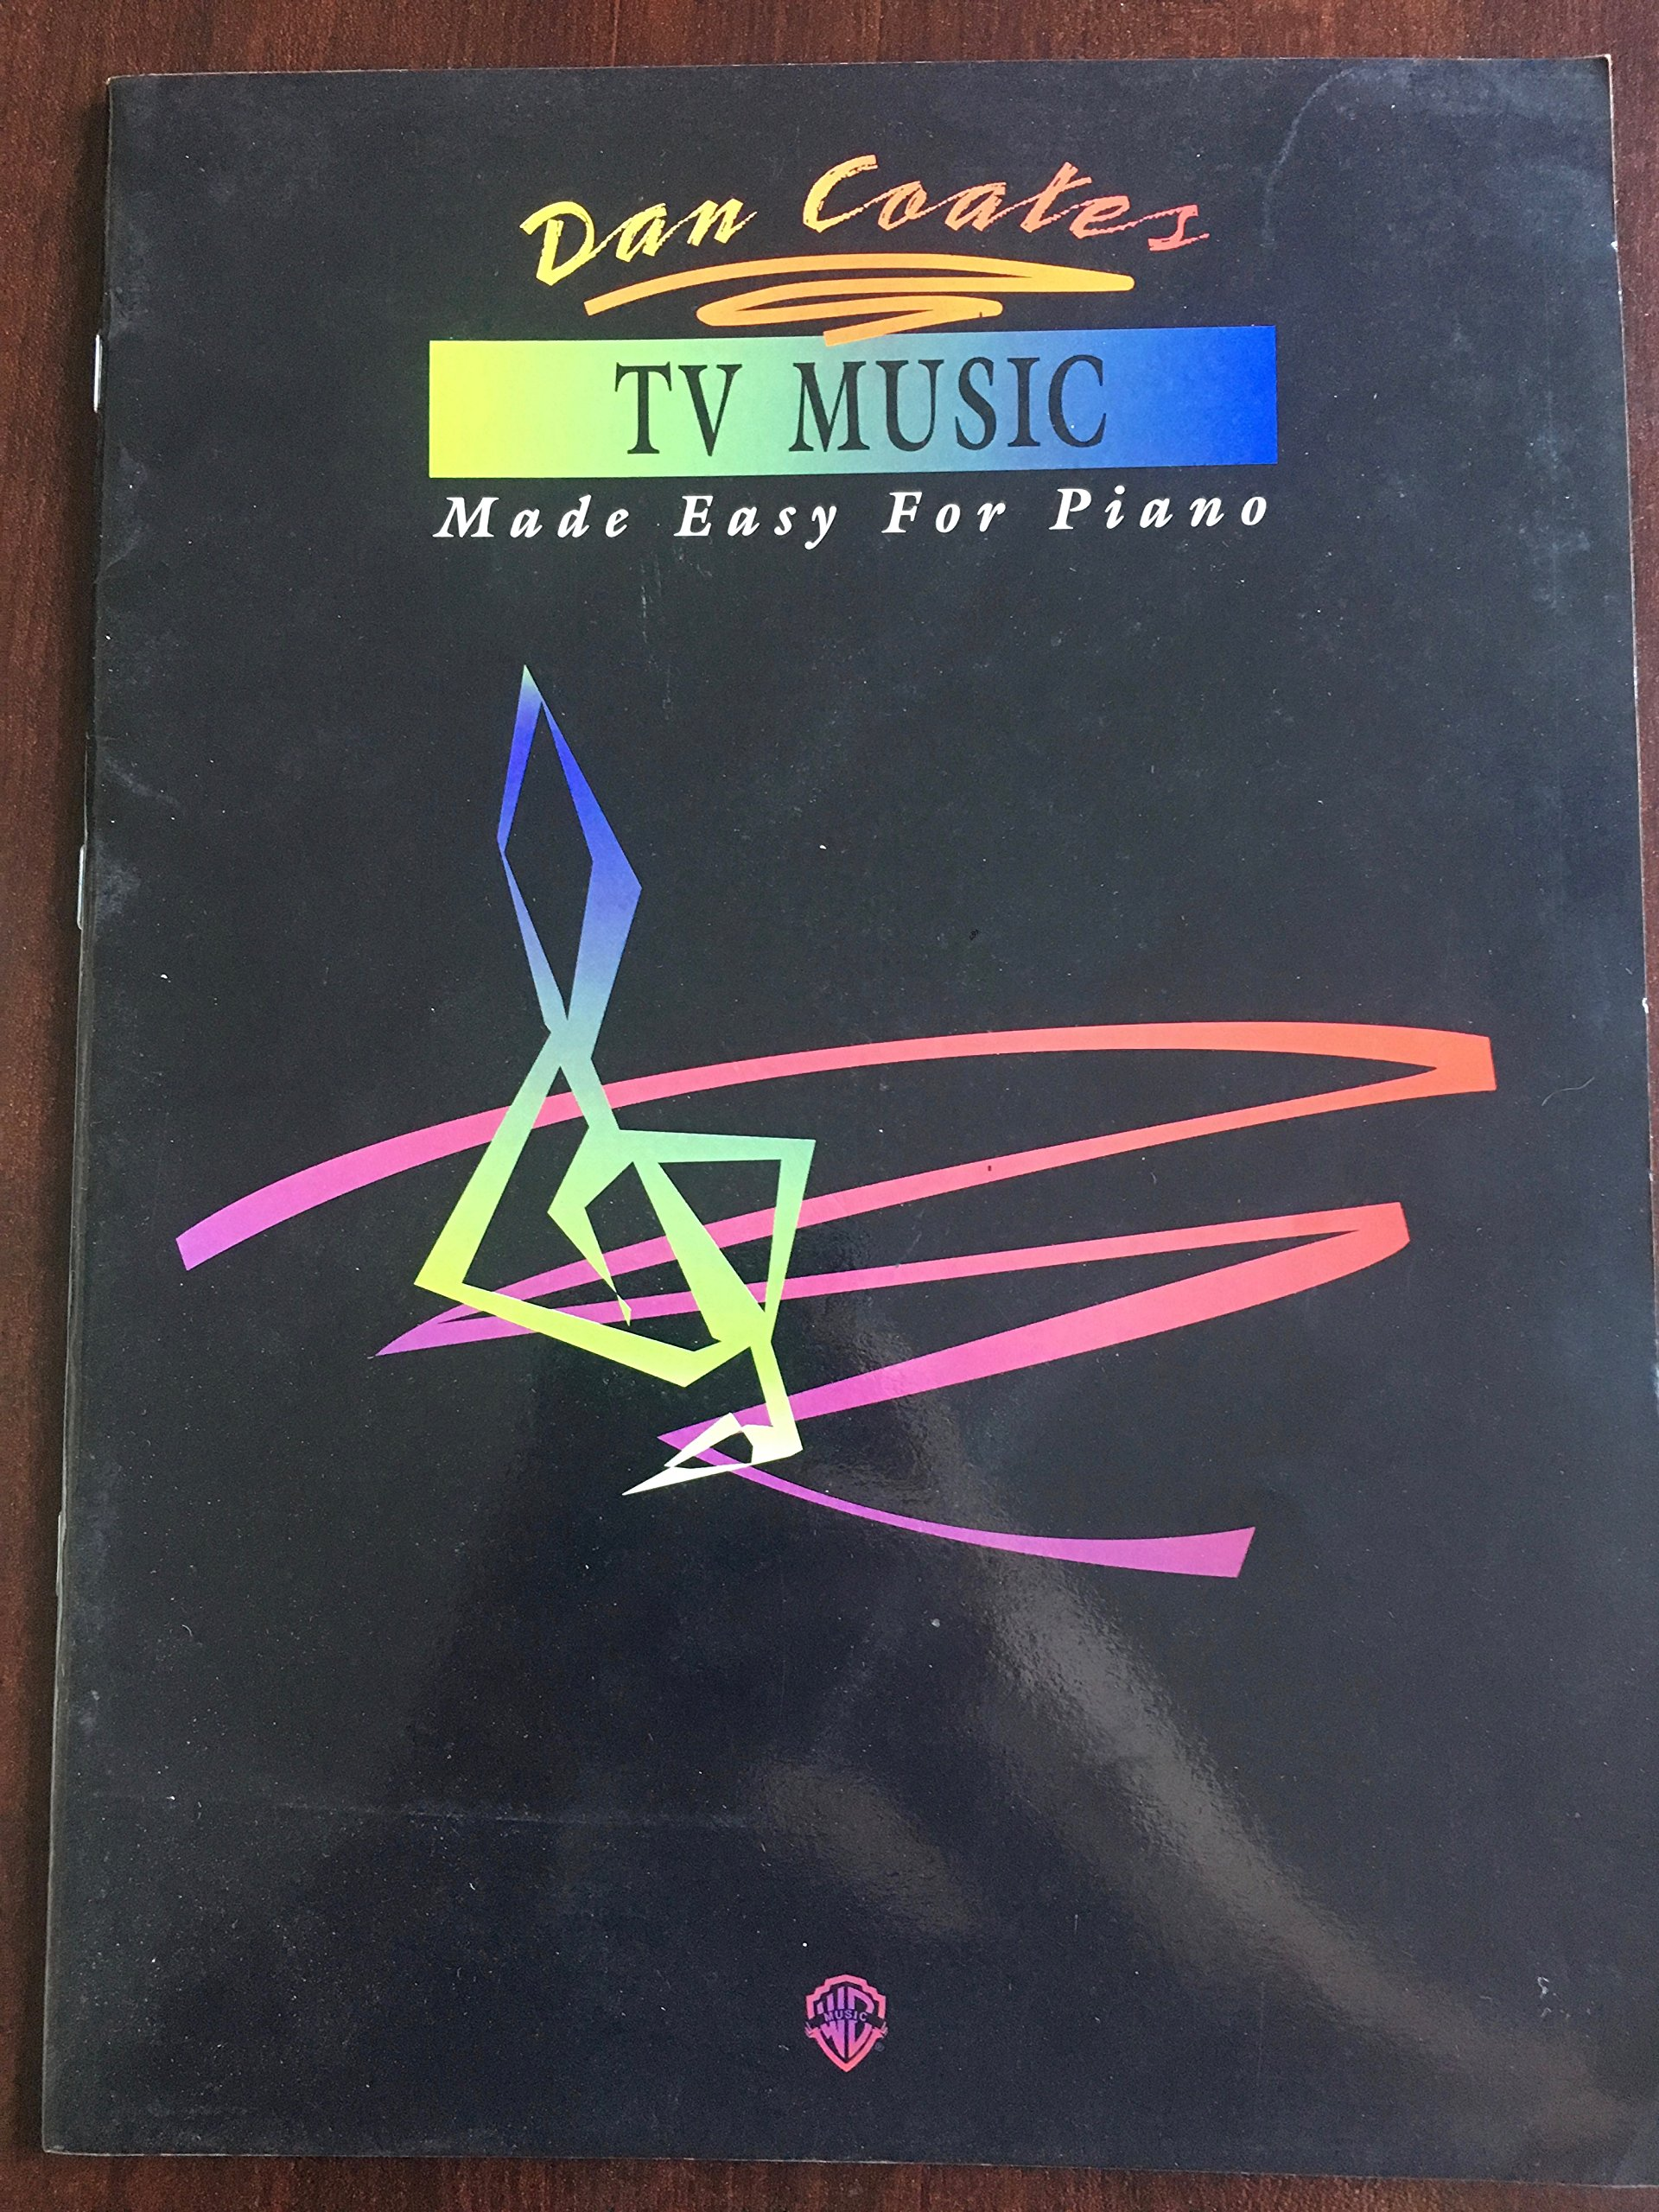 tv music made easy for piano dan coates